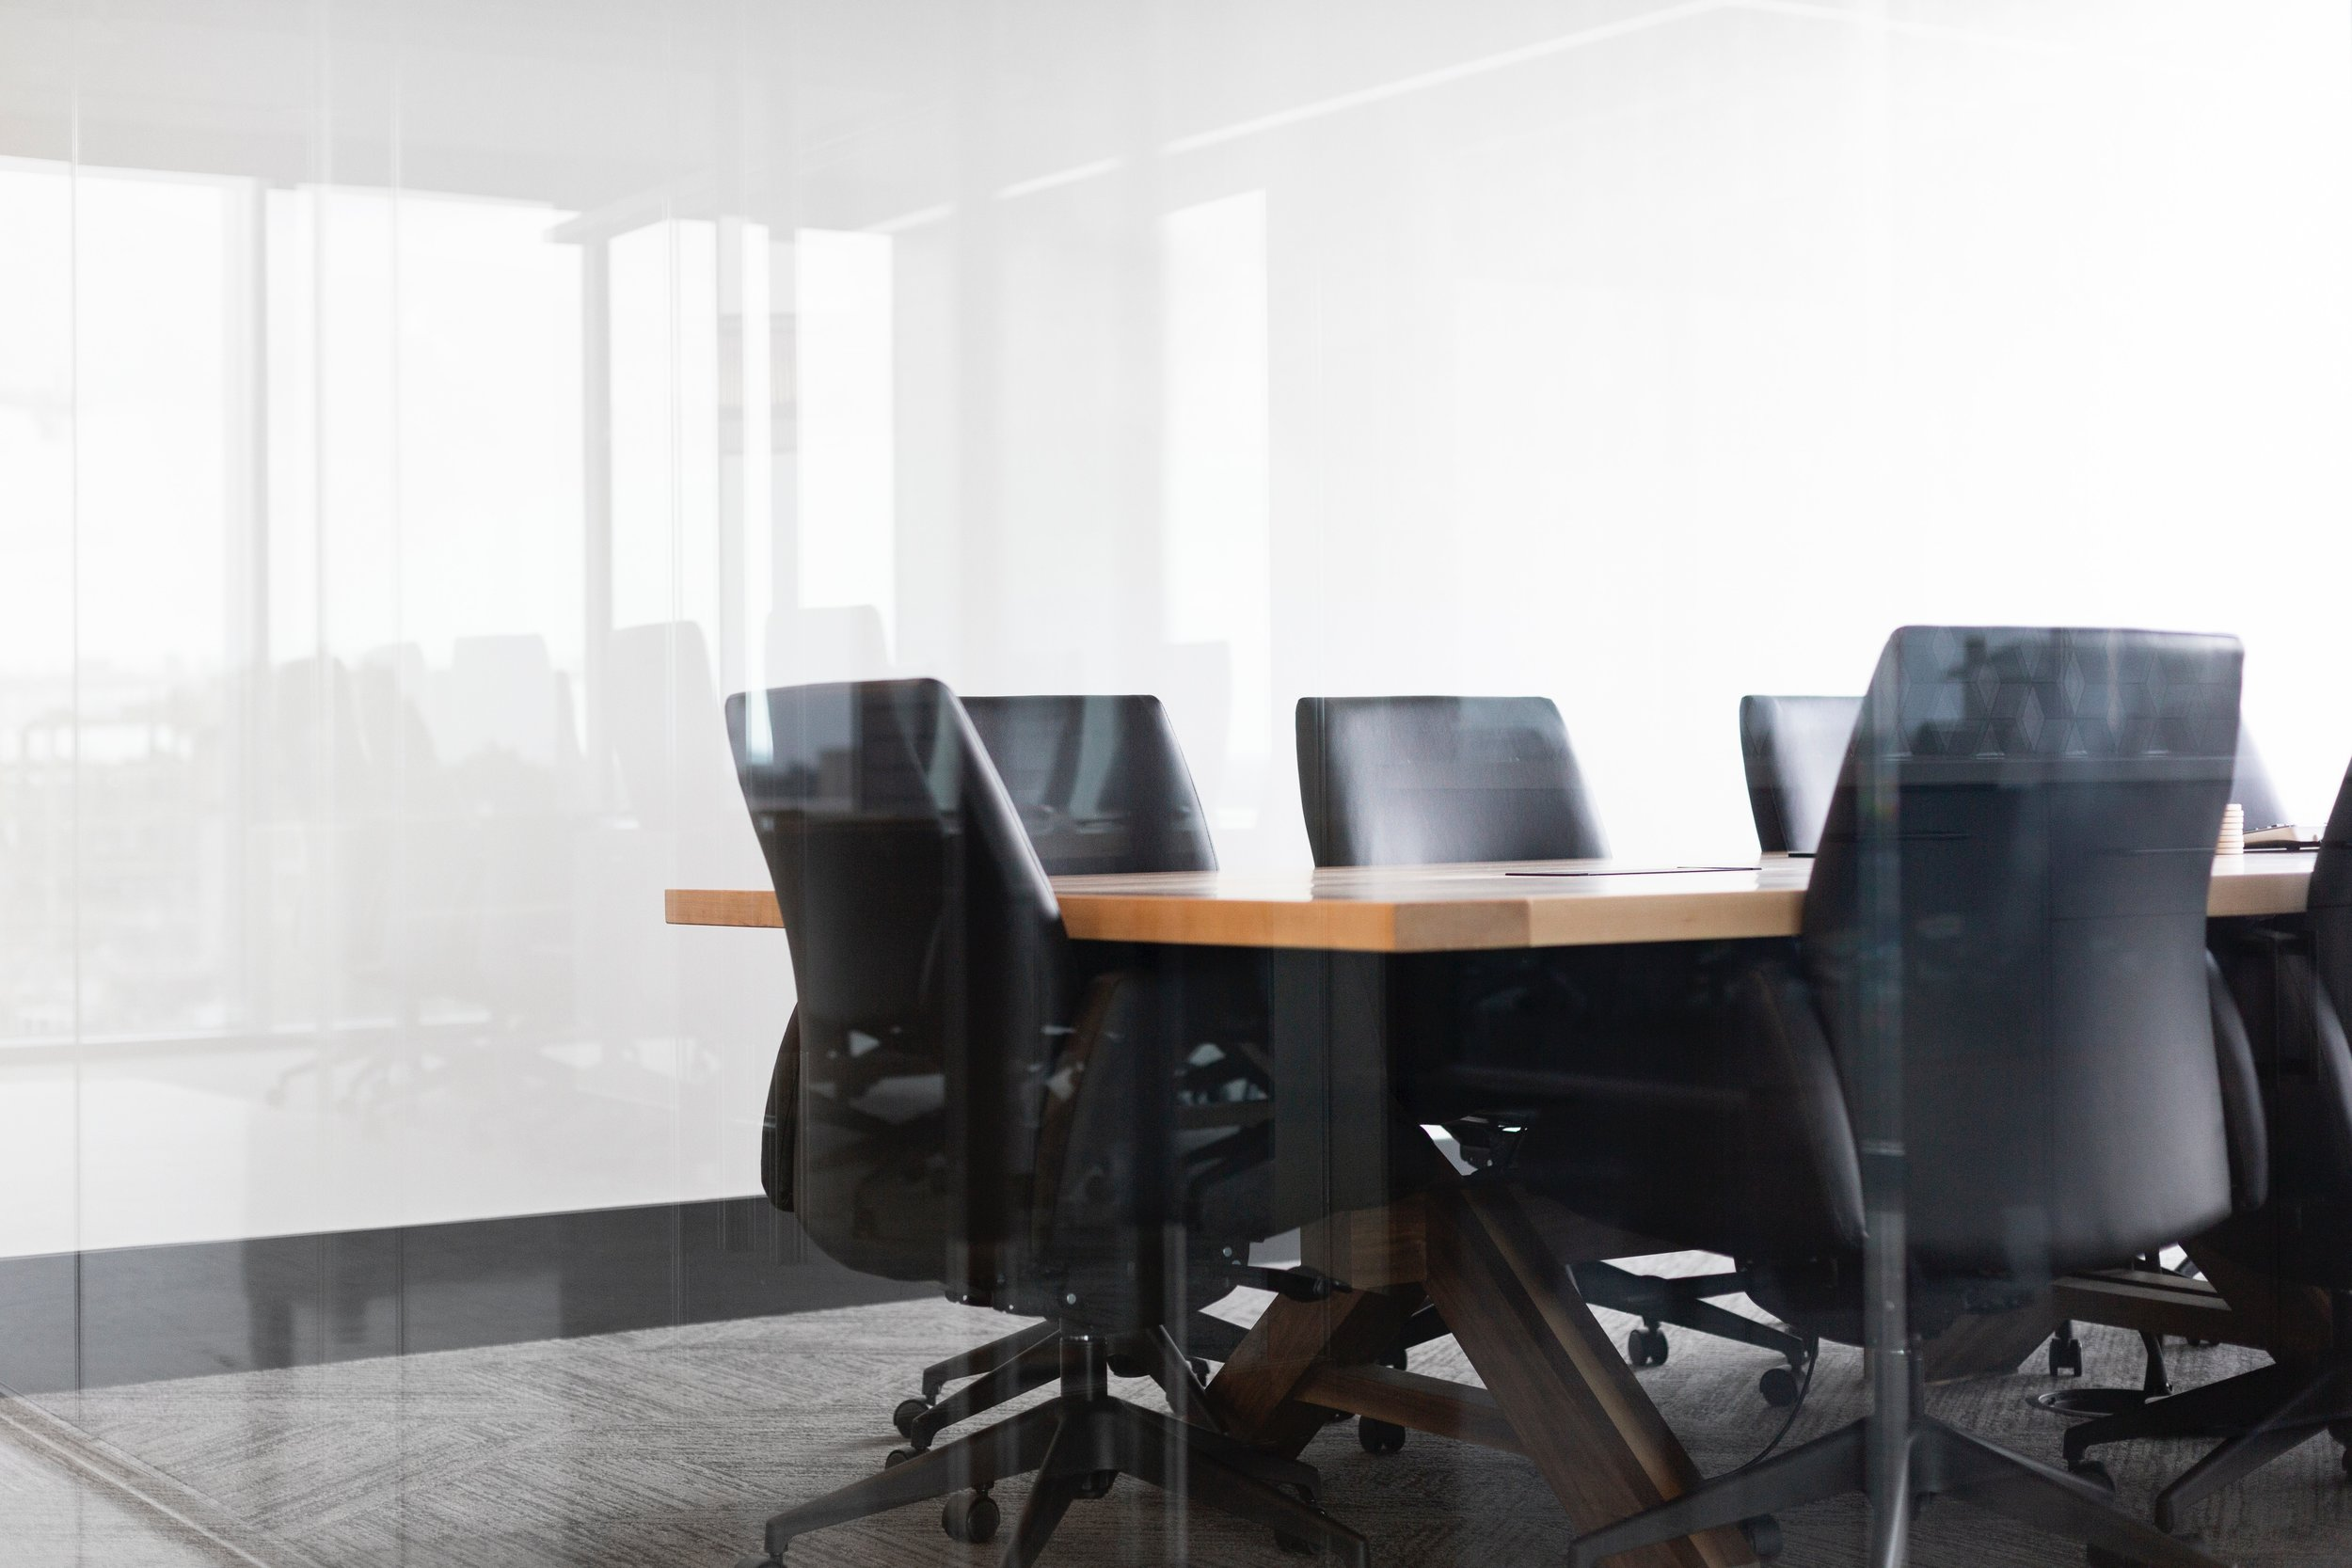 Boardroom with meeting chairs and table